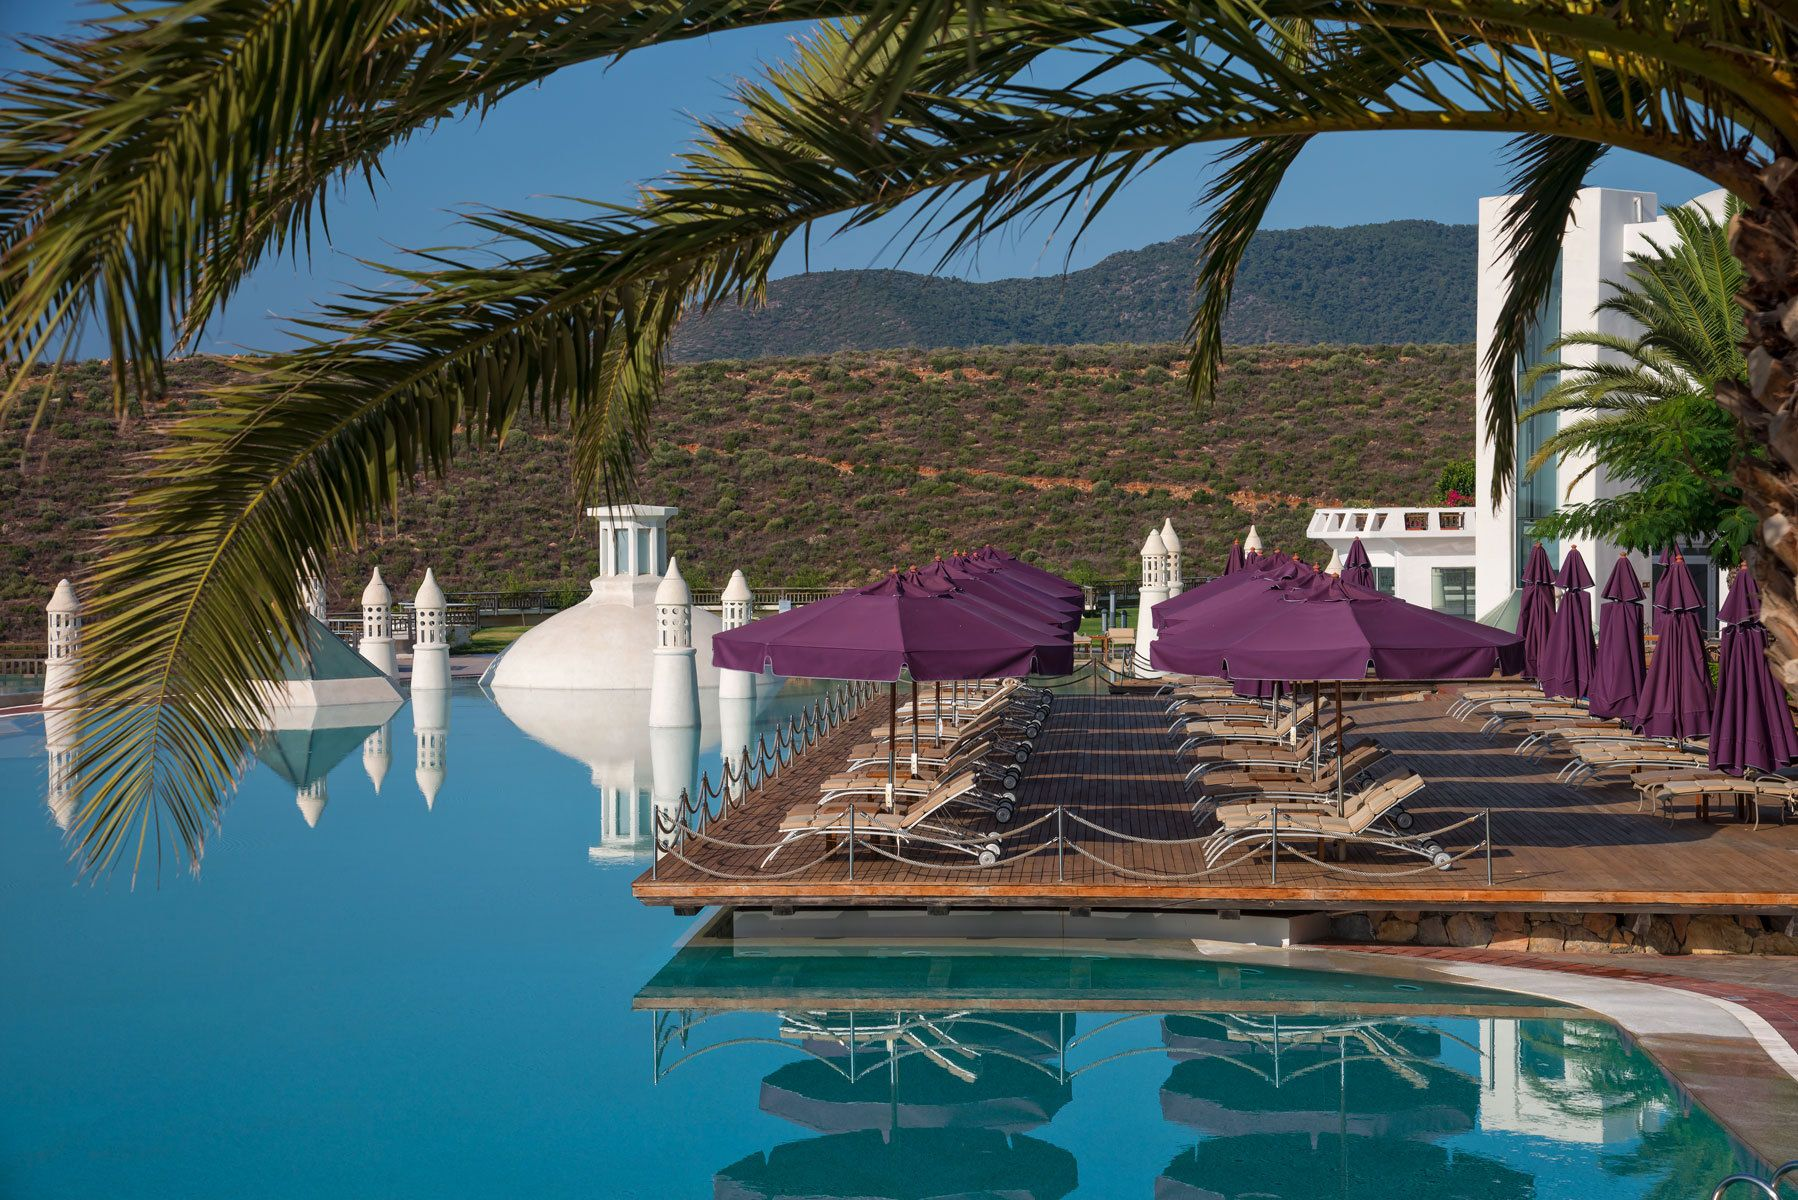 Kempinski Hotel Barbaros Bay, Bodrum, Turkey